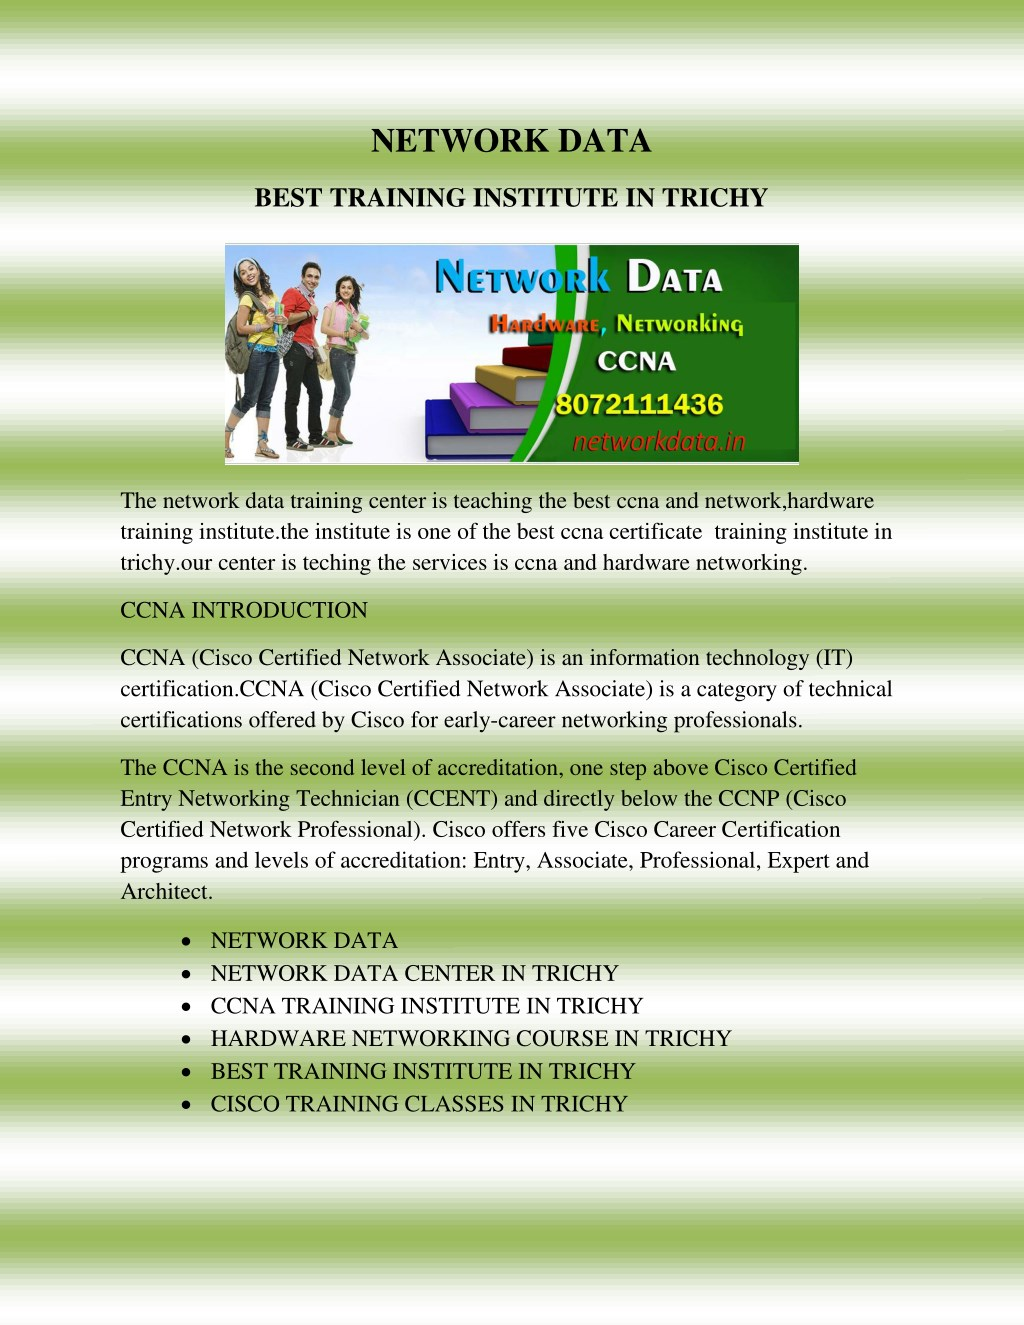 Ppt Cisco Certified Network Associate Training In Trichy